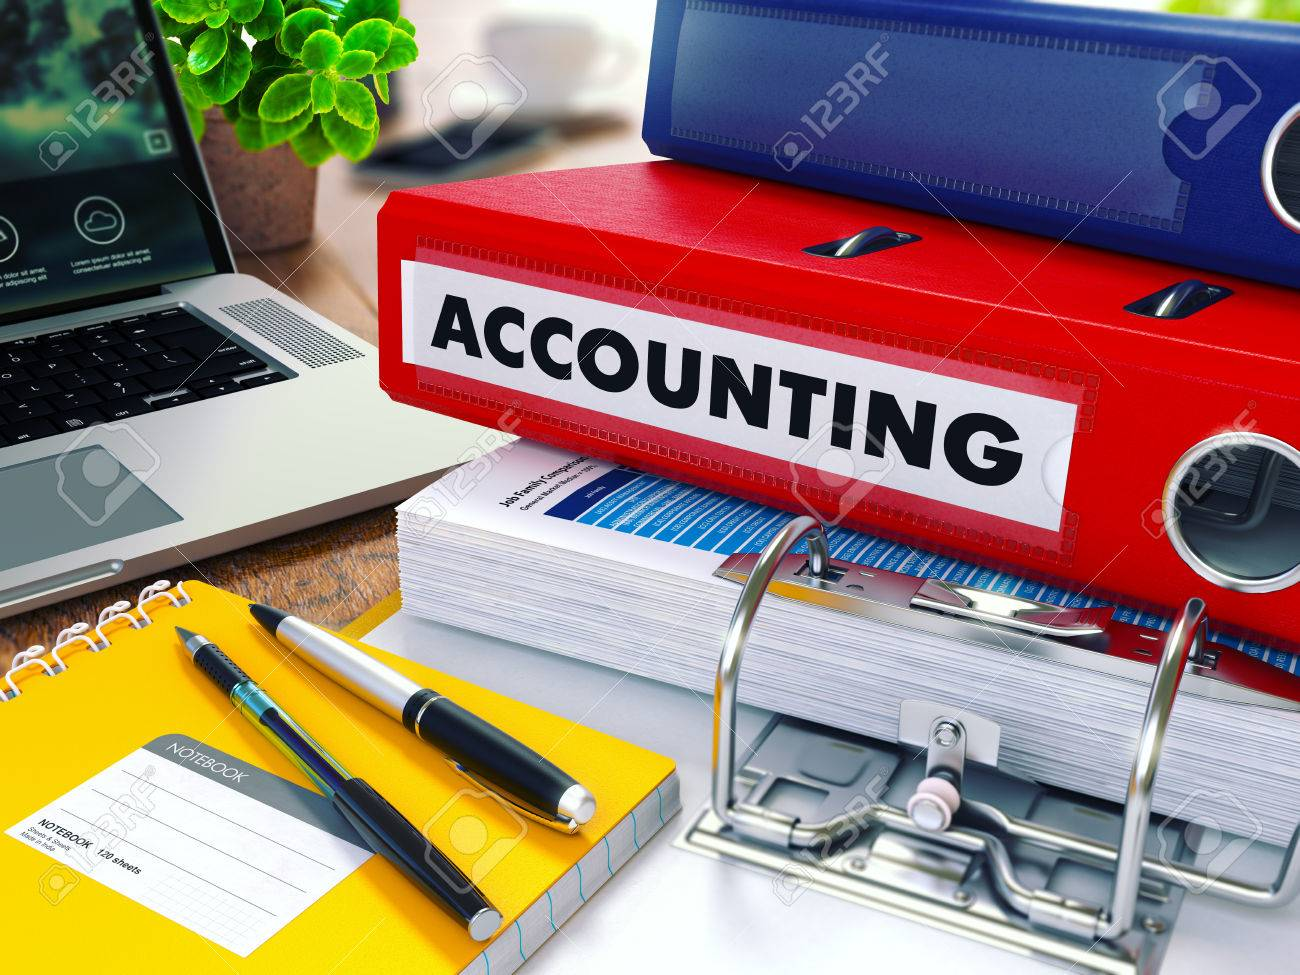 Accounting - Red Ring Binder on Office Desktop with Office Supplies and Modern Laptop. Business Concept on Blurred Background. Toned Illustration. Standard-Bild - 45648973